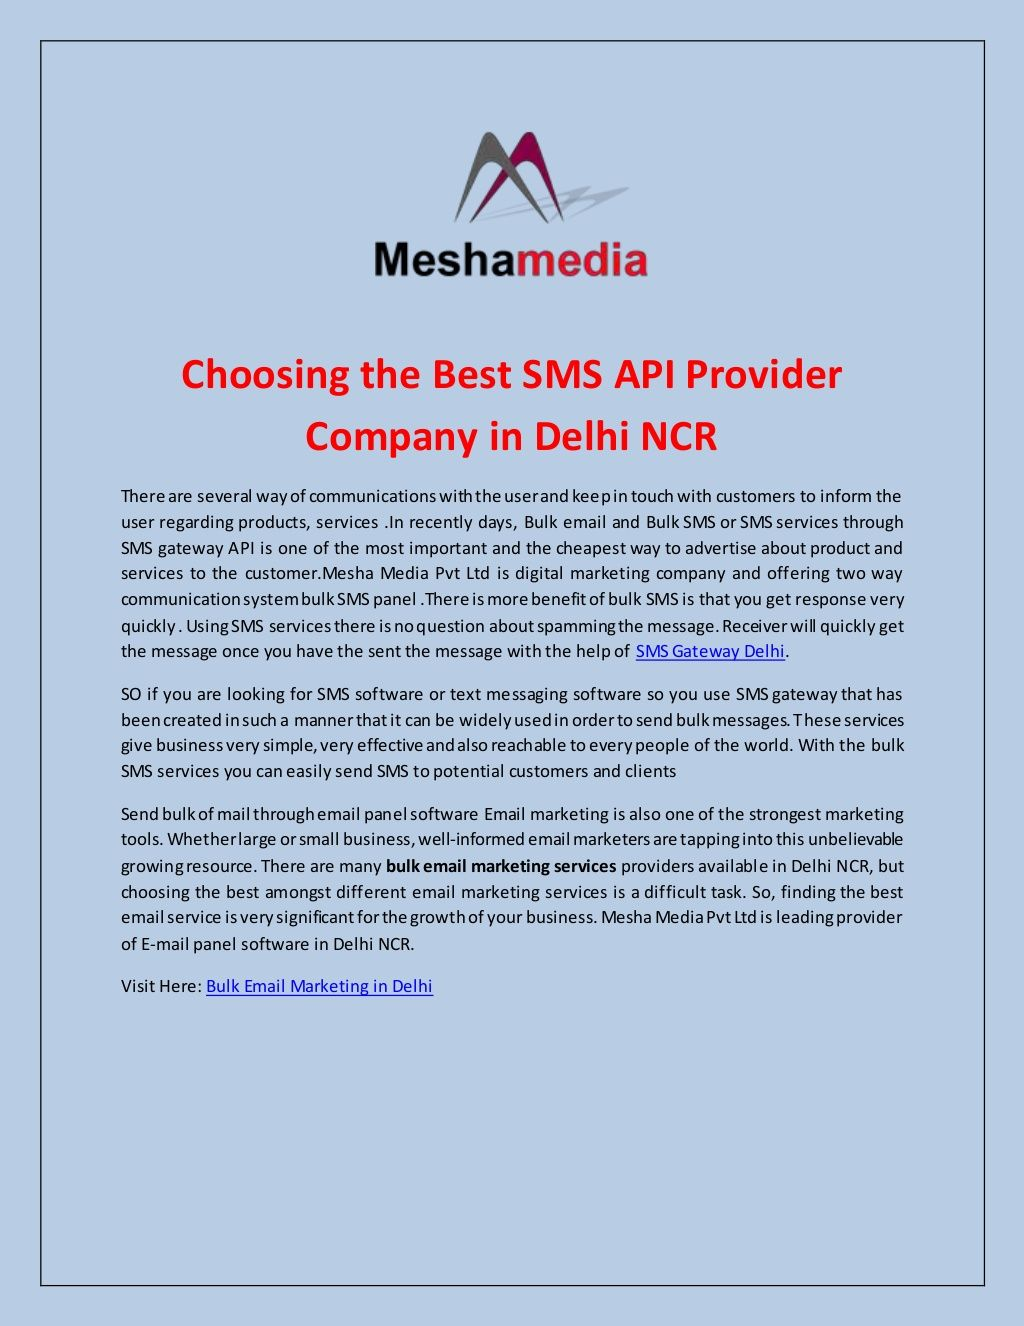 Choosing the Best SMS API Provider Company in Delhi NCR by